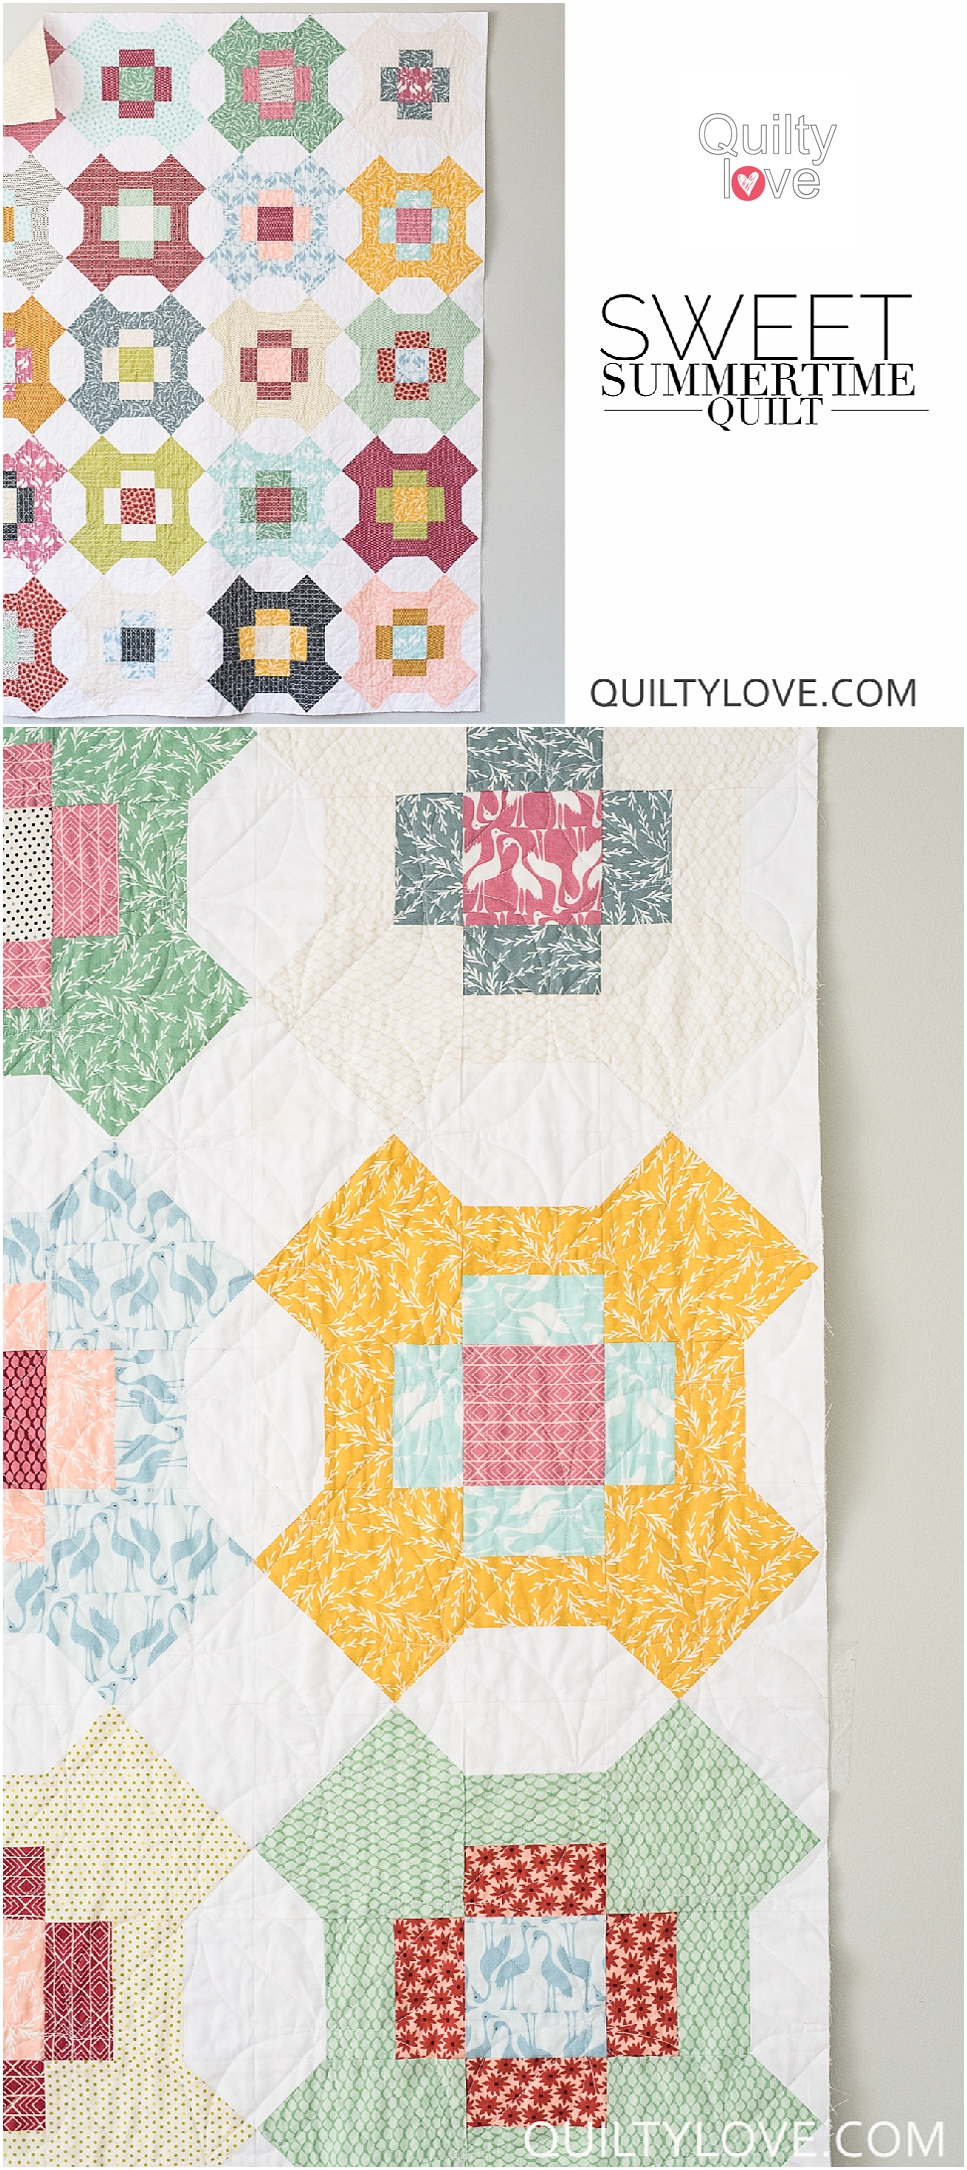 Sweet Summertime quilt